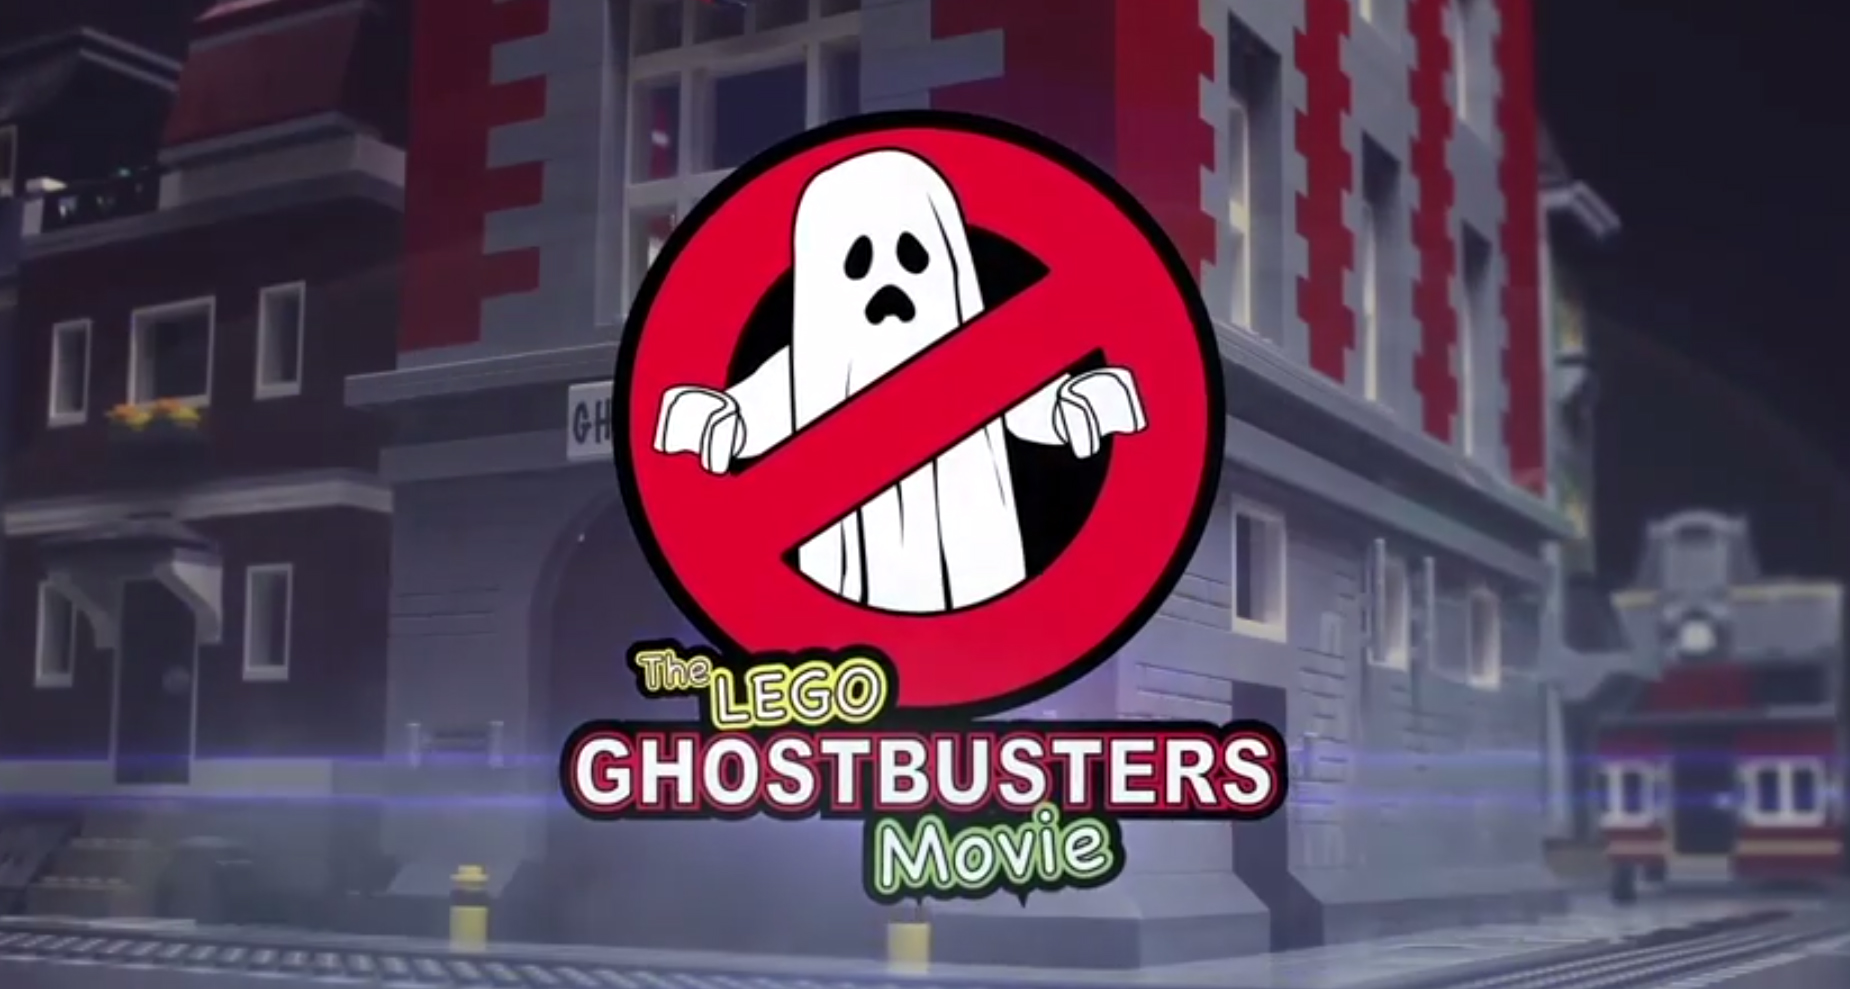 Video: The Lego Ghostbusters Movie (short film)